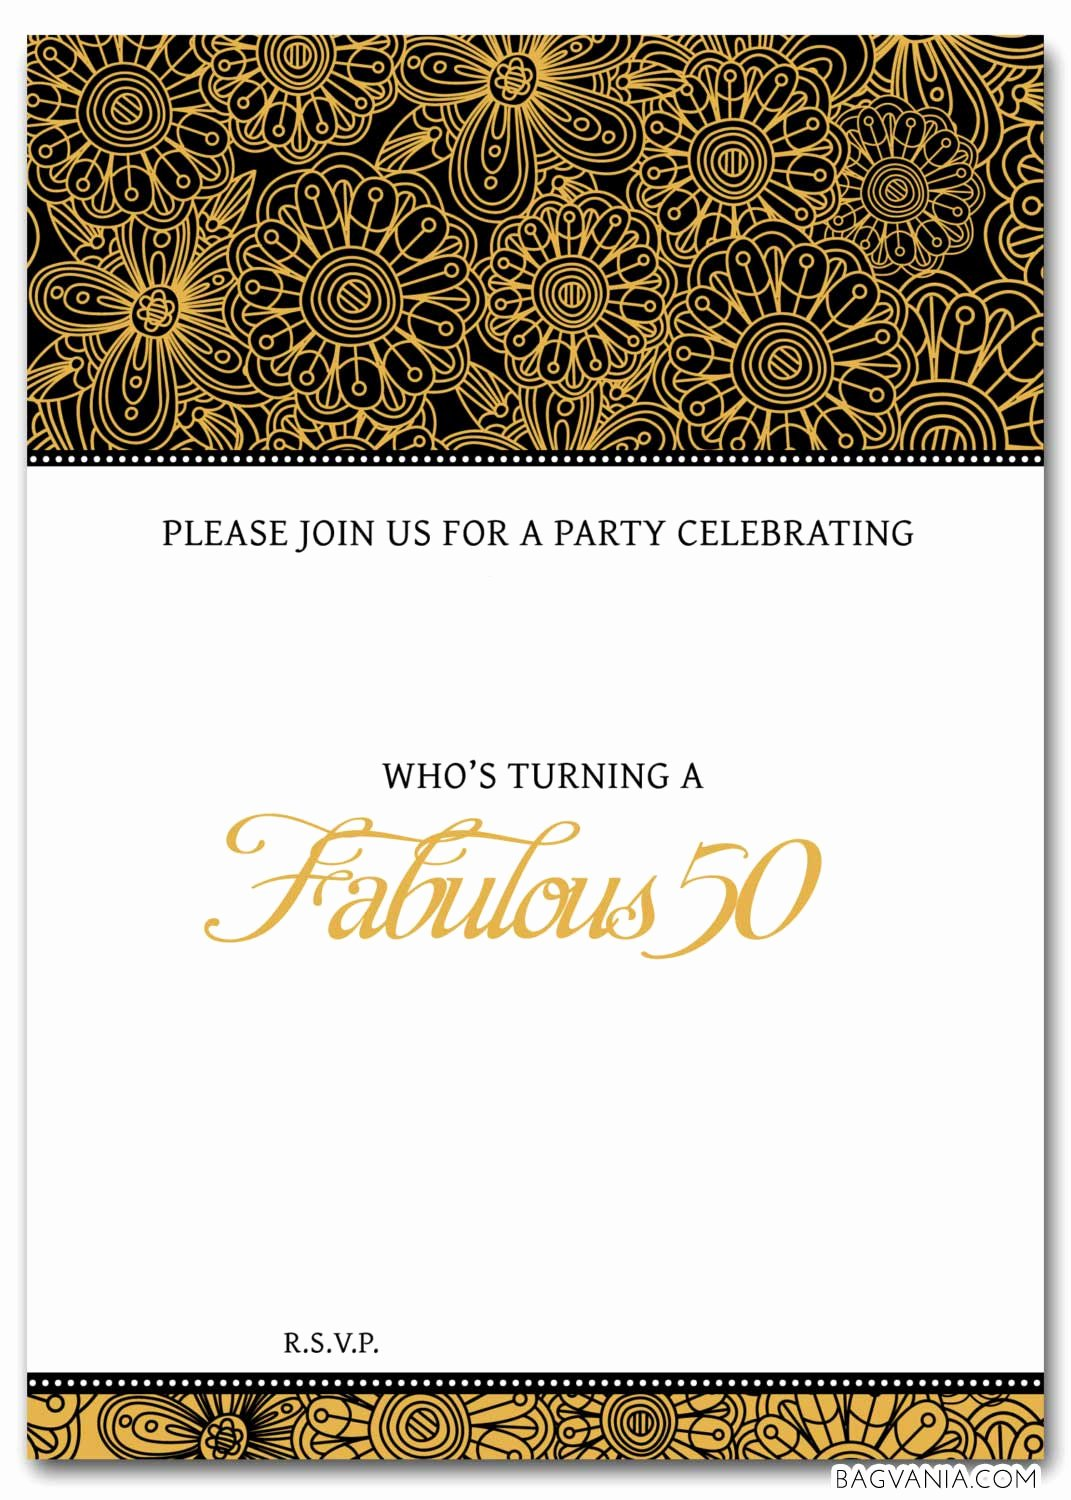 Free 50th Birthday Party Invitations Wording – Bagvania